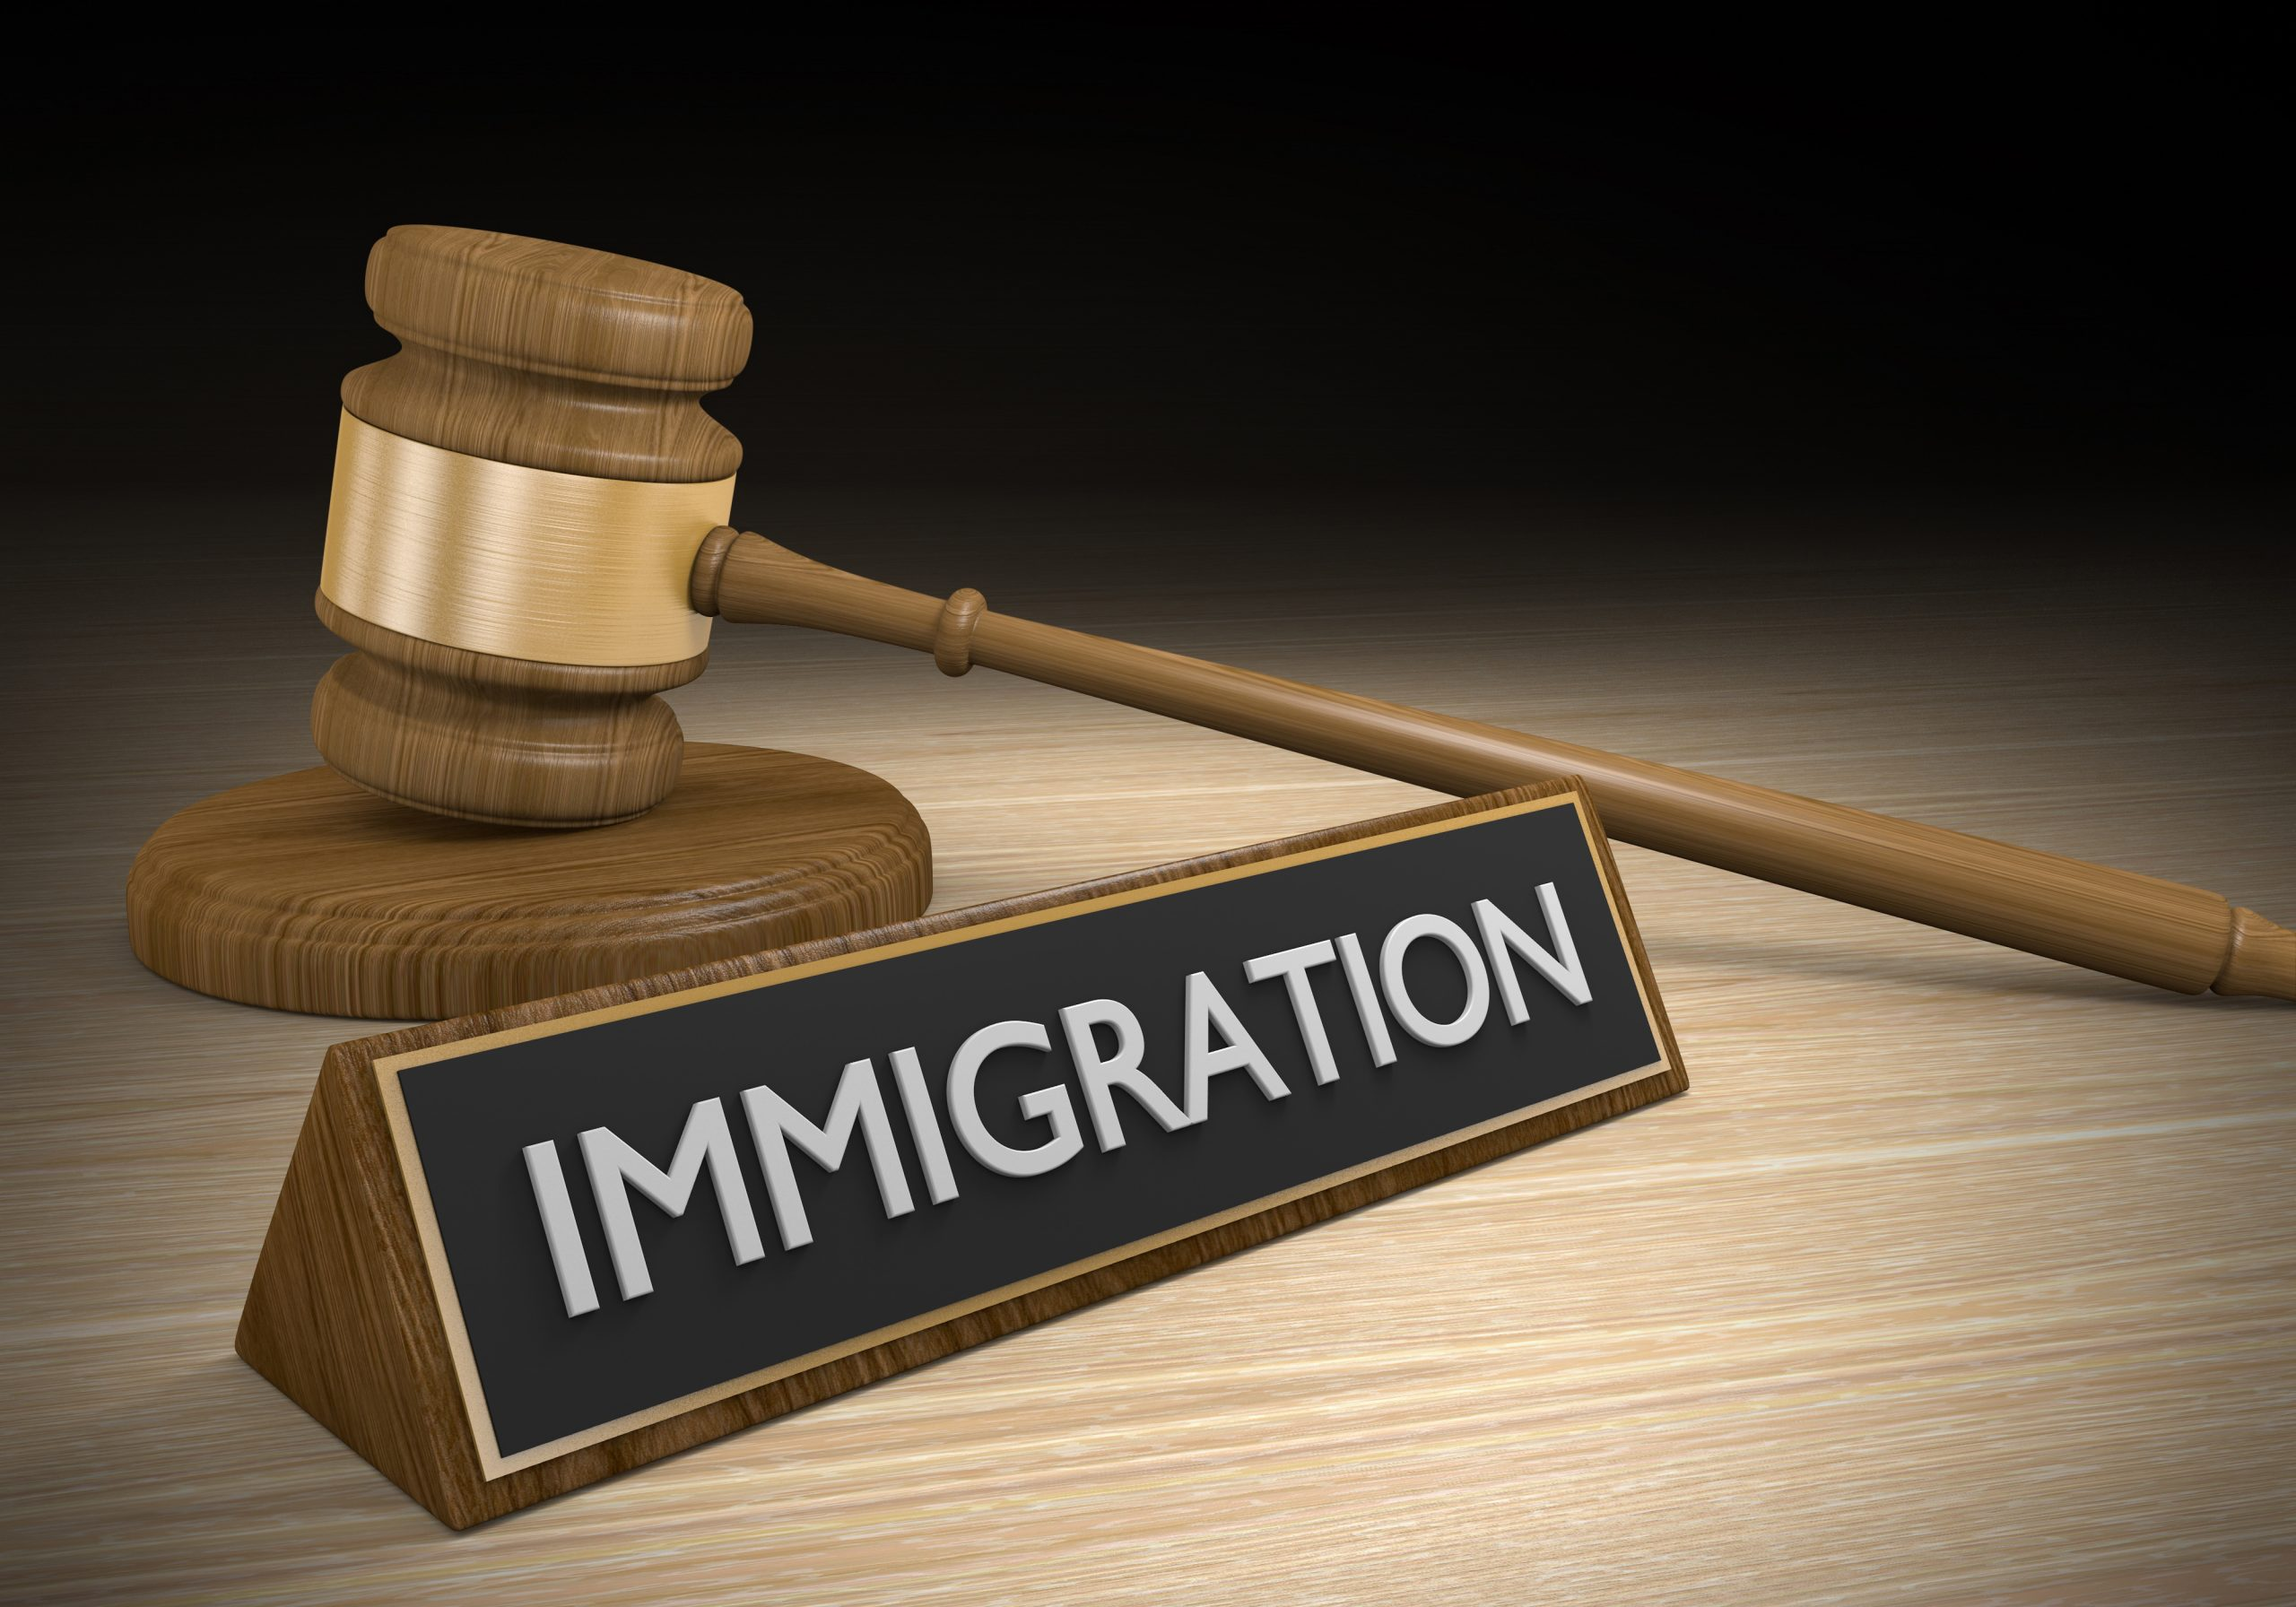 Illegal immigration reform and law policy